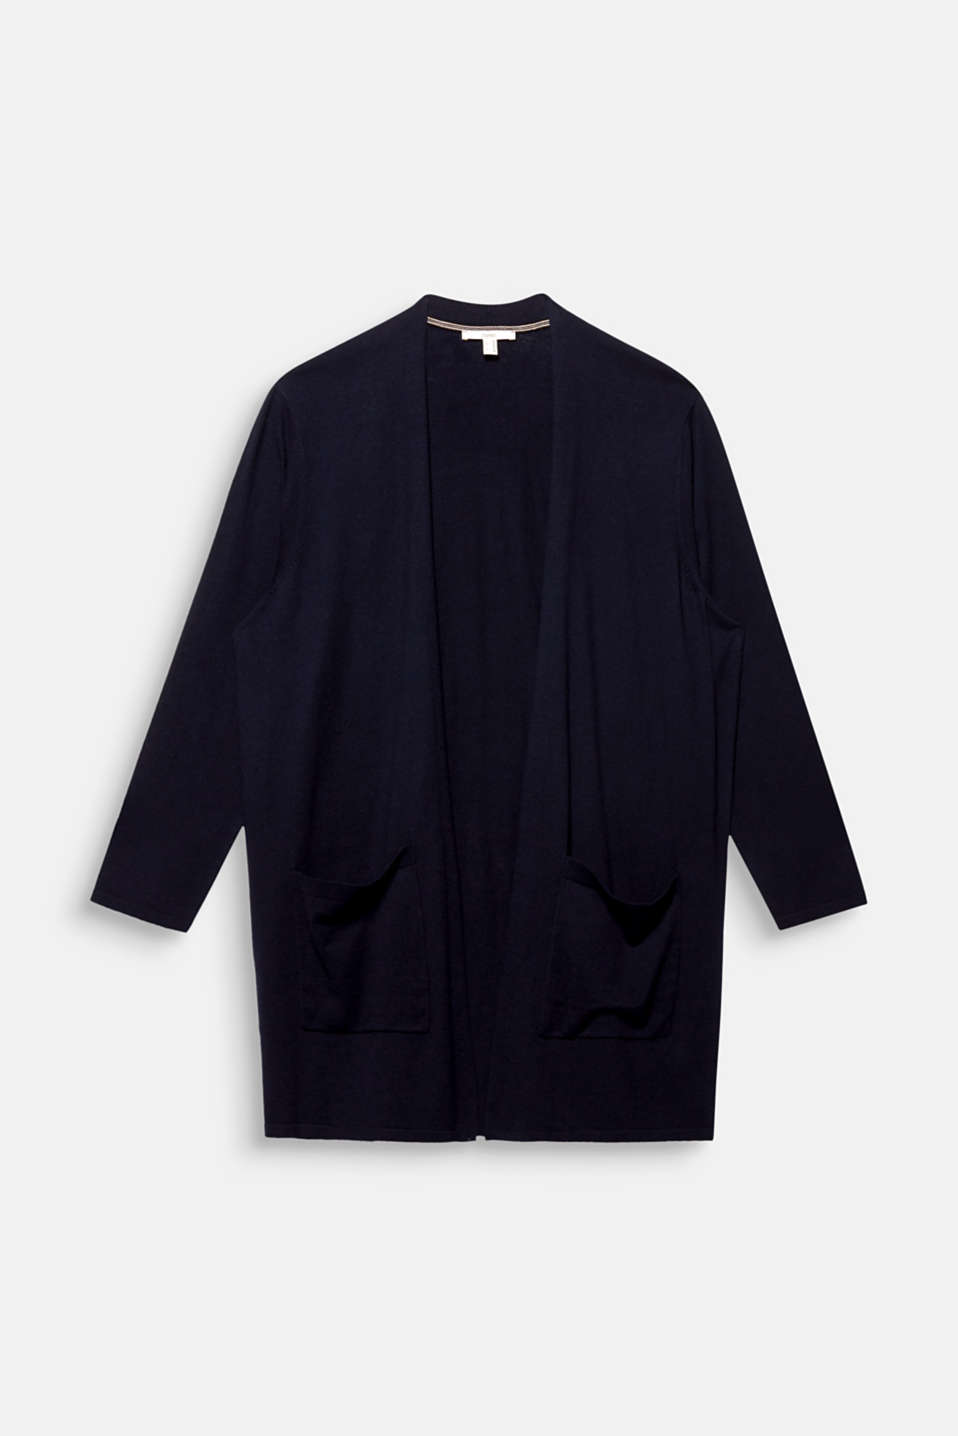 CURVY with linen: open, fine knit cardigan, NAVY, detail image number 5